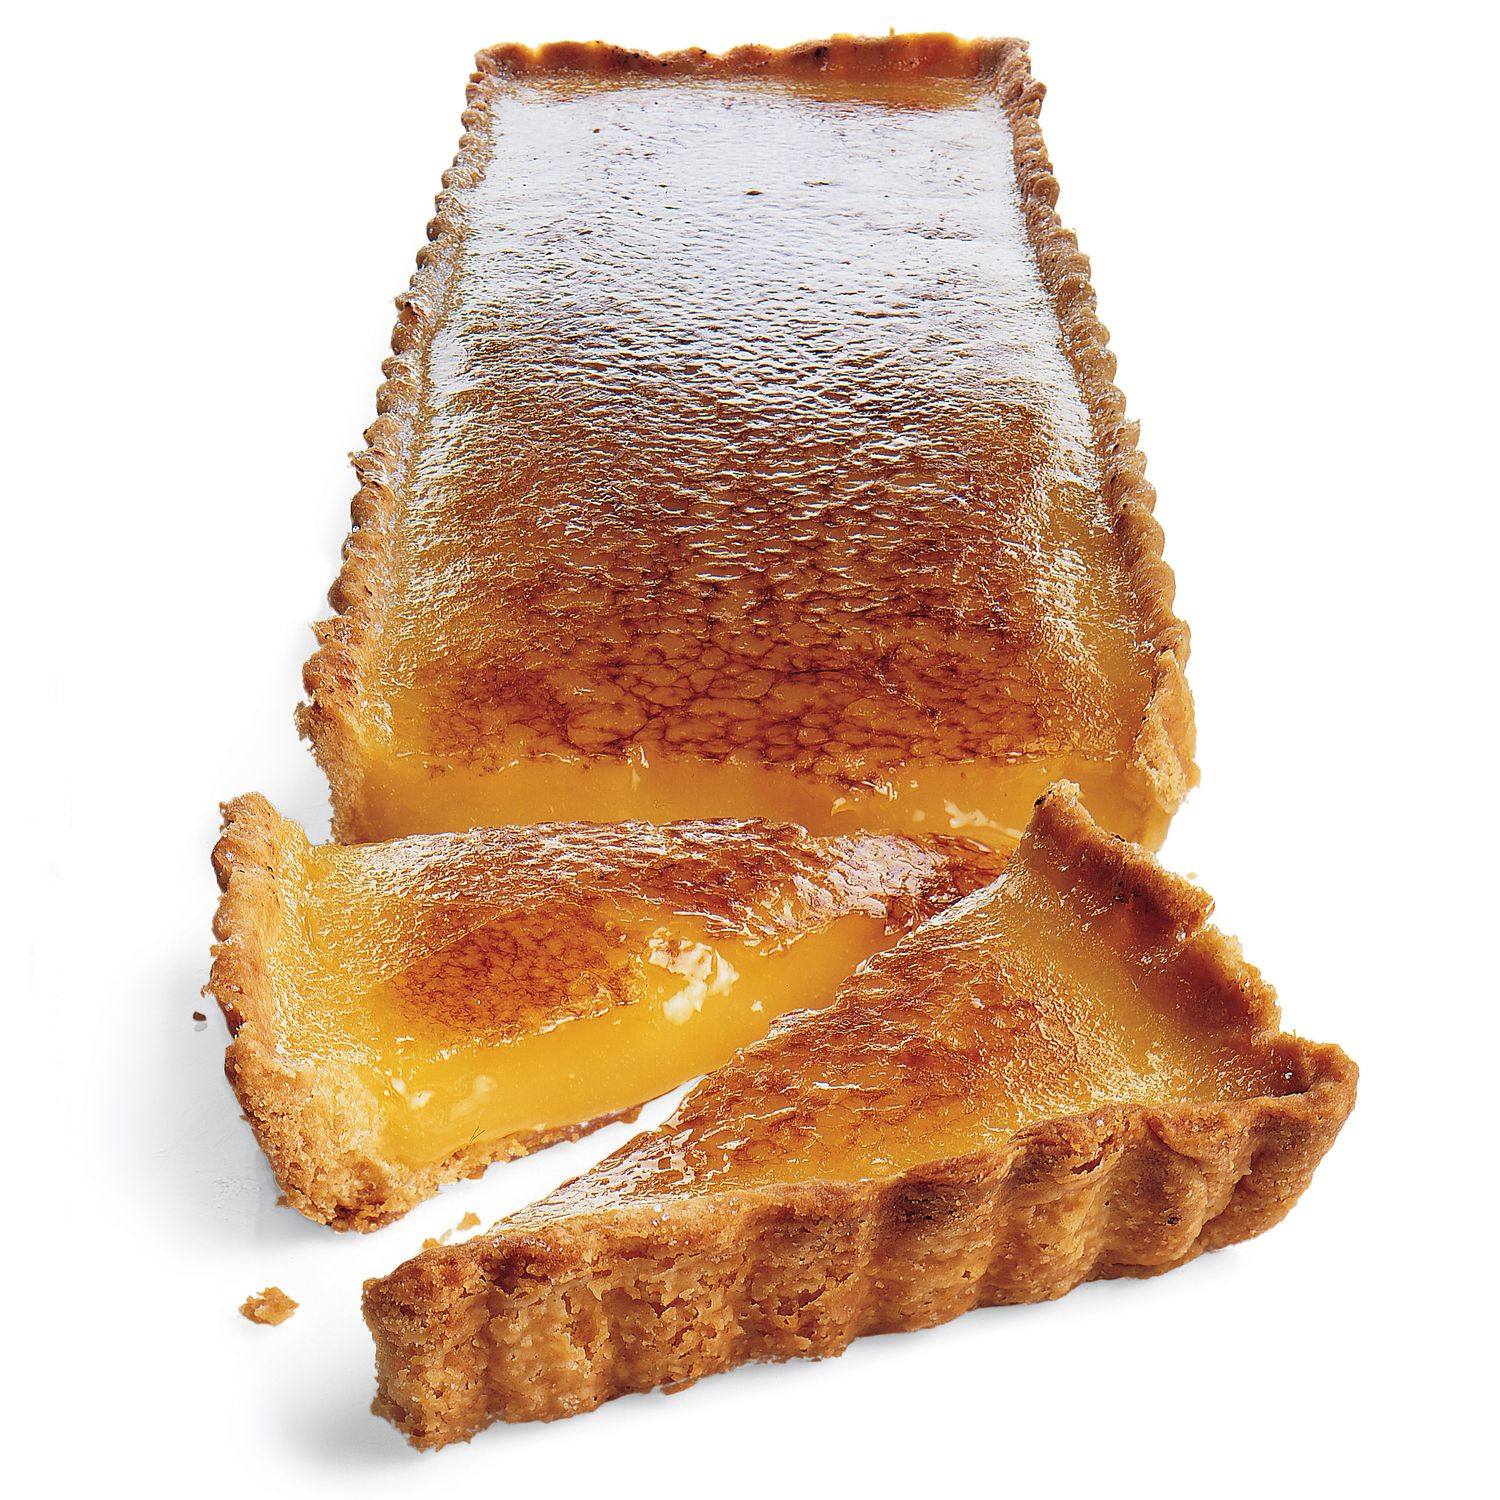 Like a creme brulee, this dessert has crunchy caramelized sugar on top. But a silky lemon filling is below, chilled in a crisp tart shell made with pate sucree.